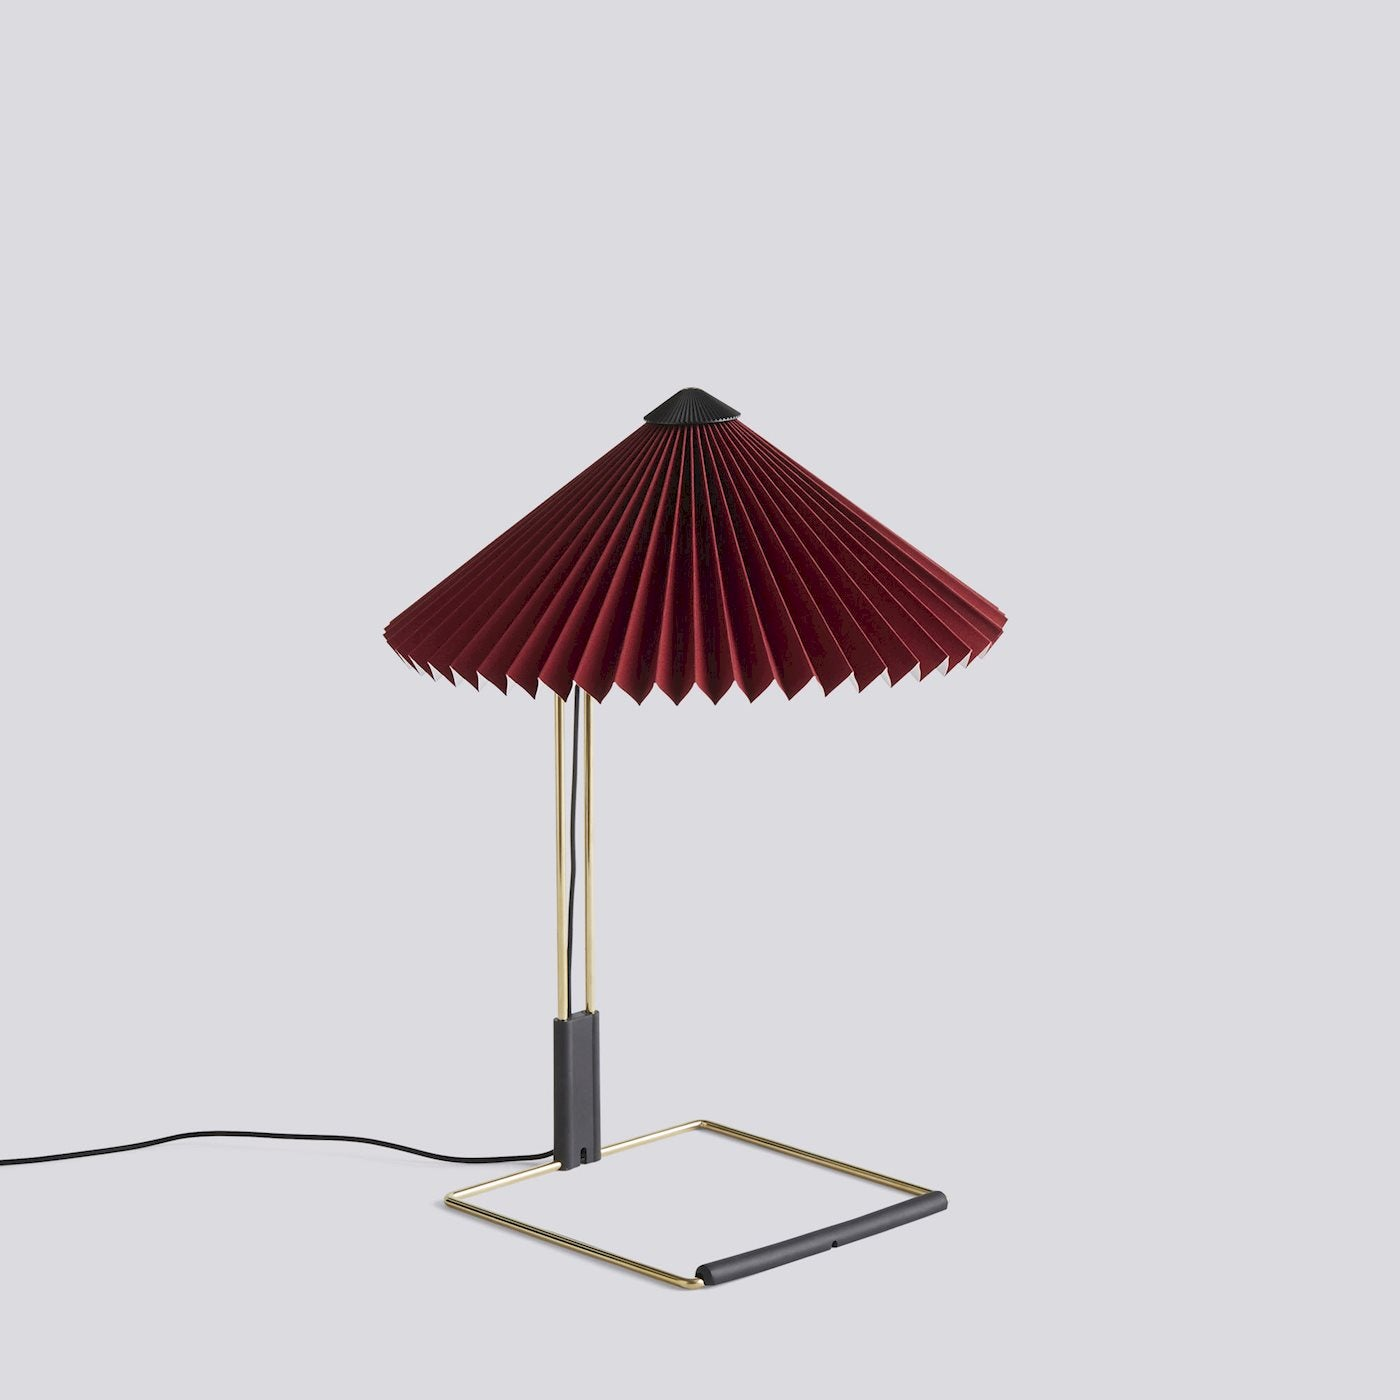 4191216009000zzzzzzz_matin-table-lamp-s-oxide-red-shade_1220x1220_brandvariant